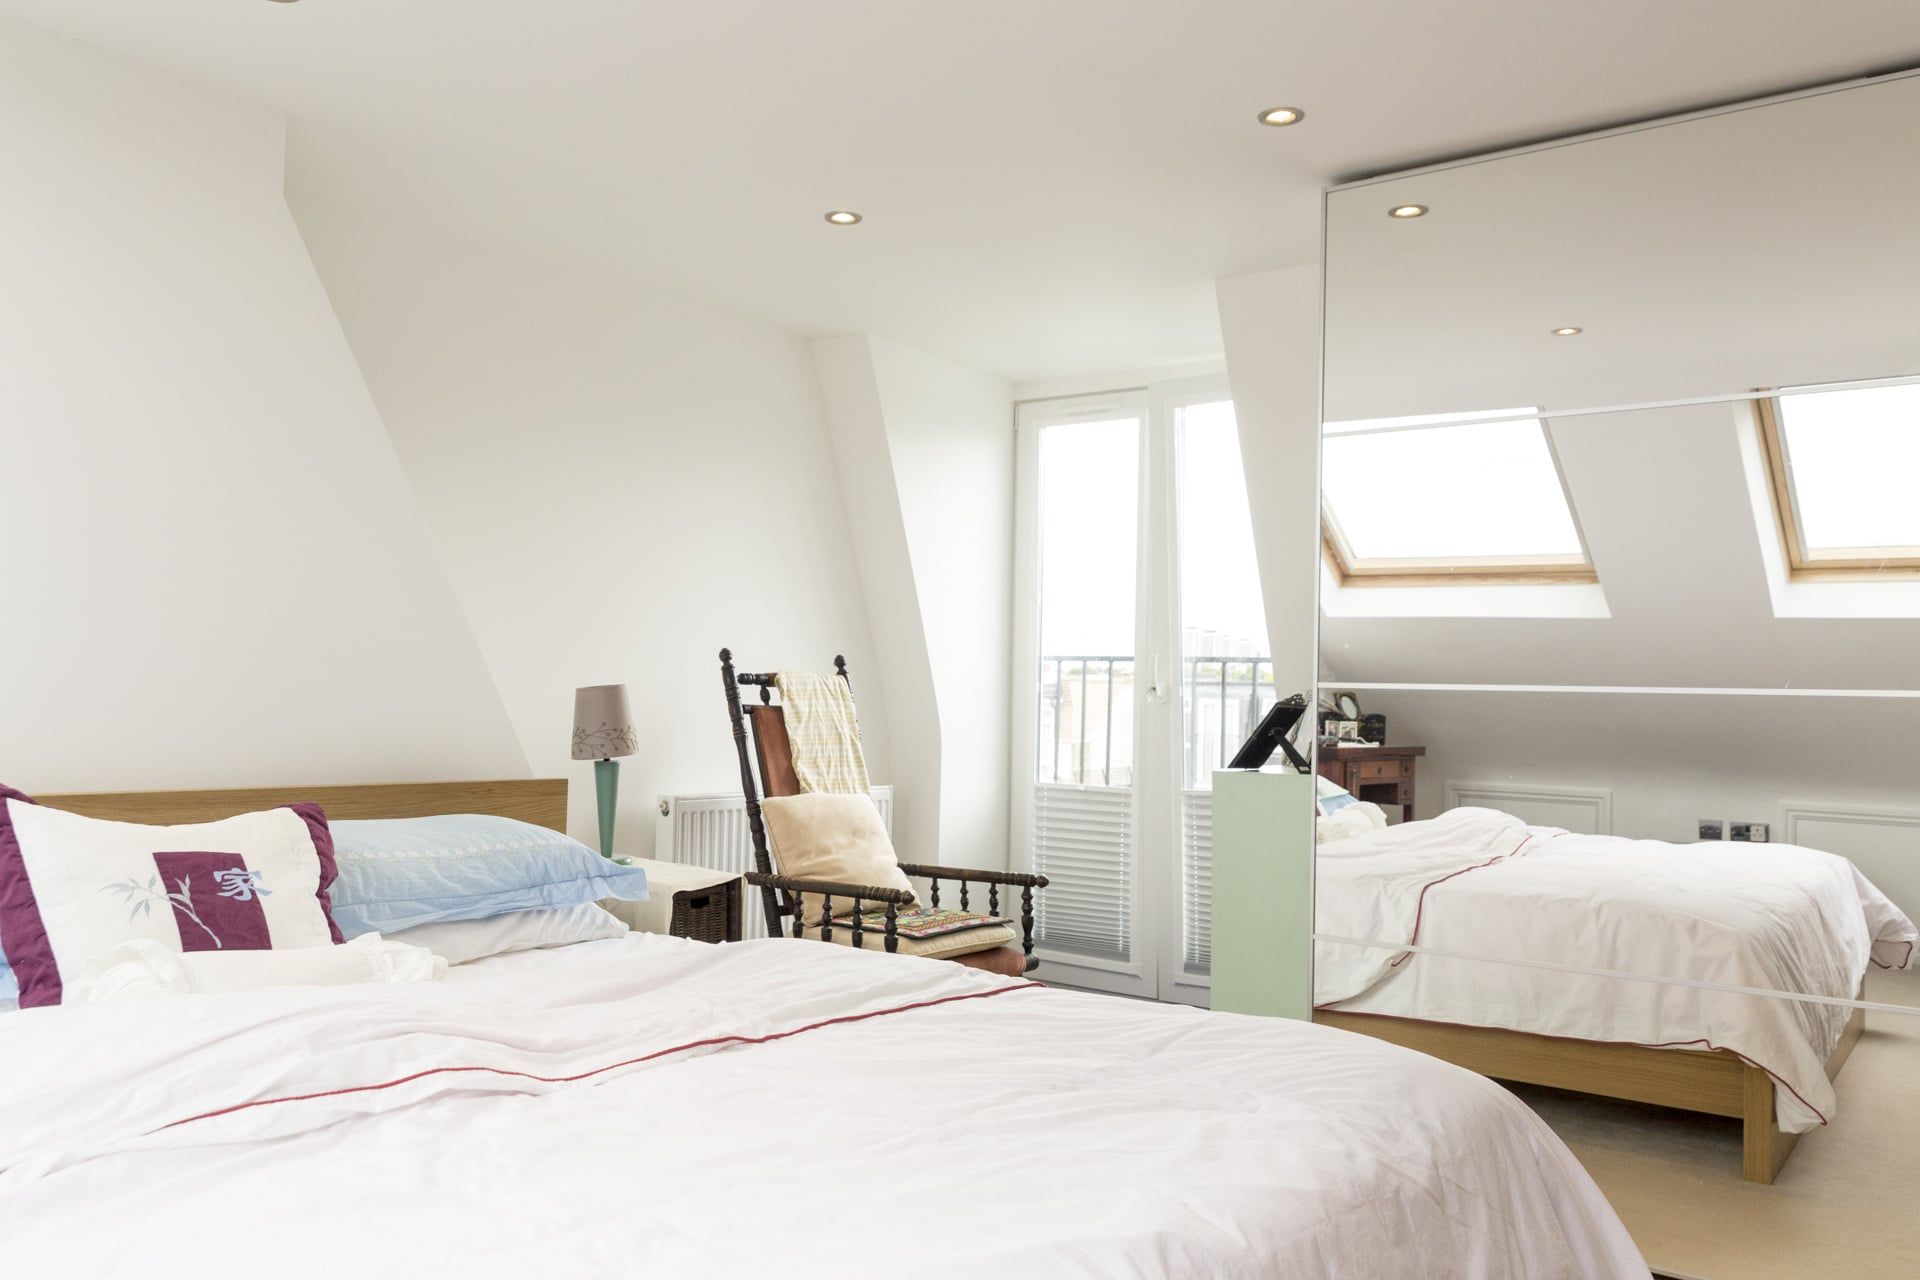 10 tips for making the most of your space simply loft london loft